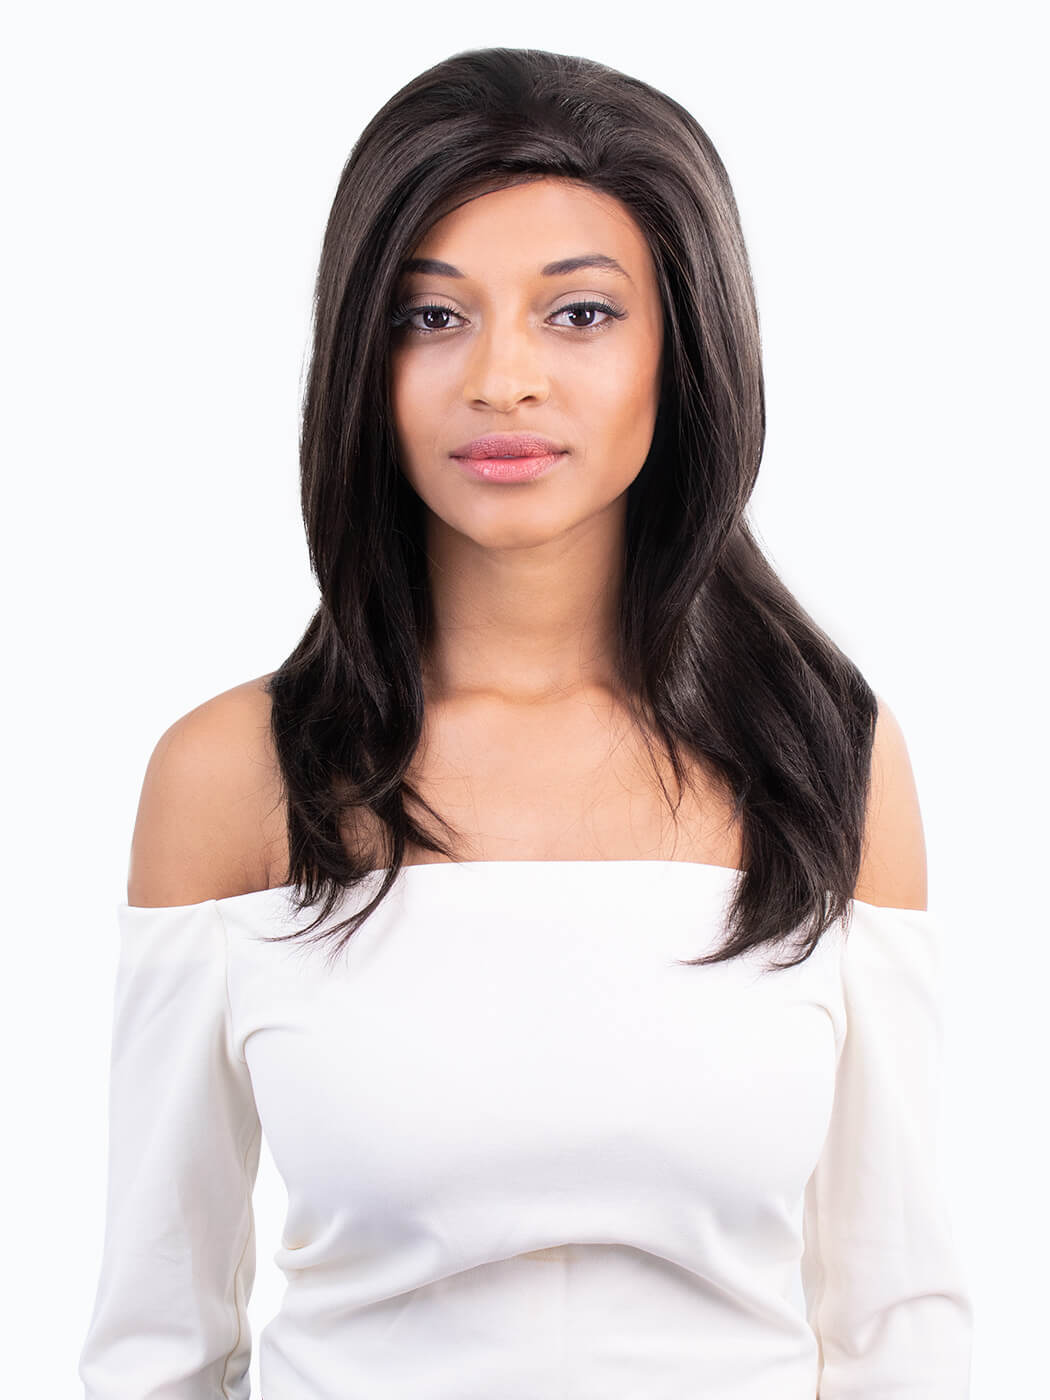 Sensational - Tim Carli long brown wig | Front vew on model | Human Hair Wig | Lace Front Wig